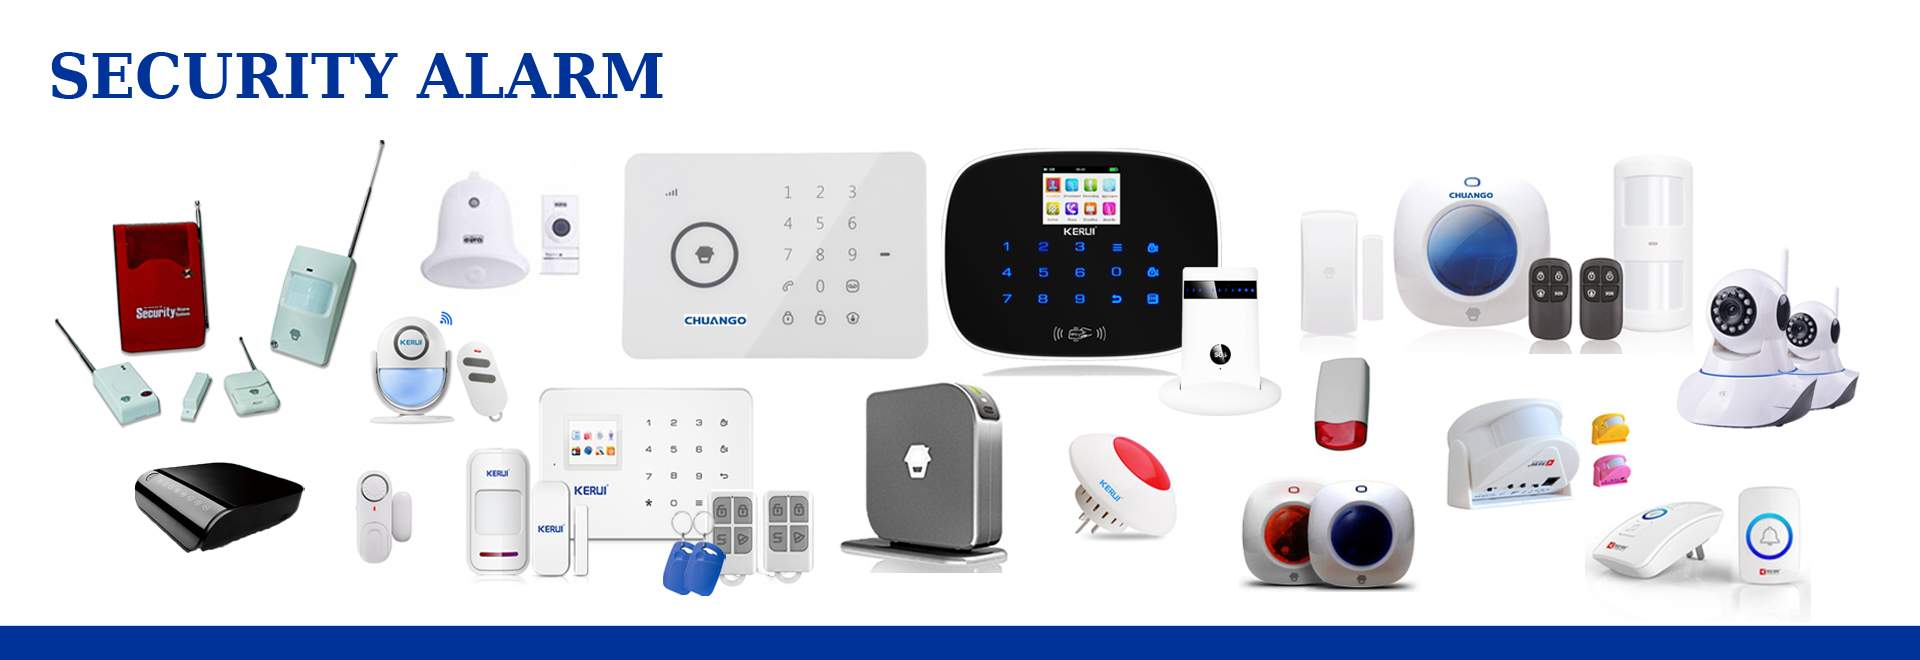 Kerui Security Alarm